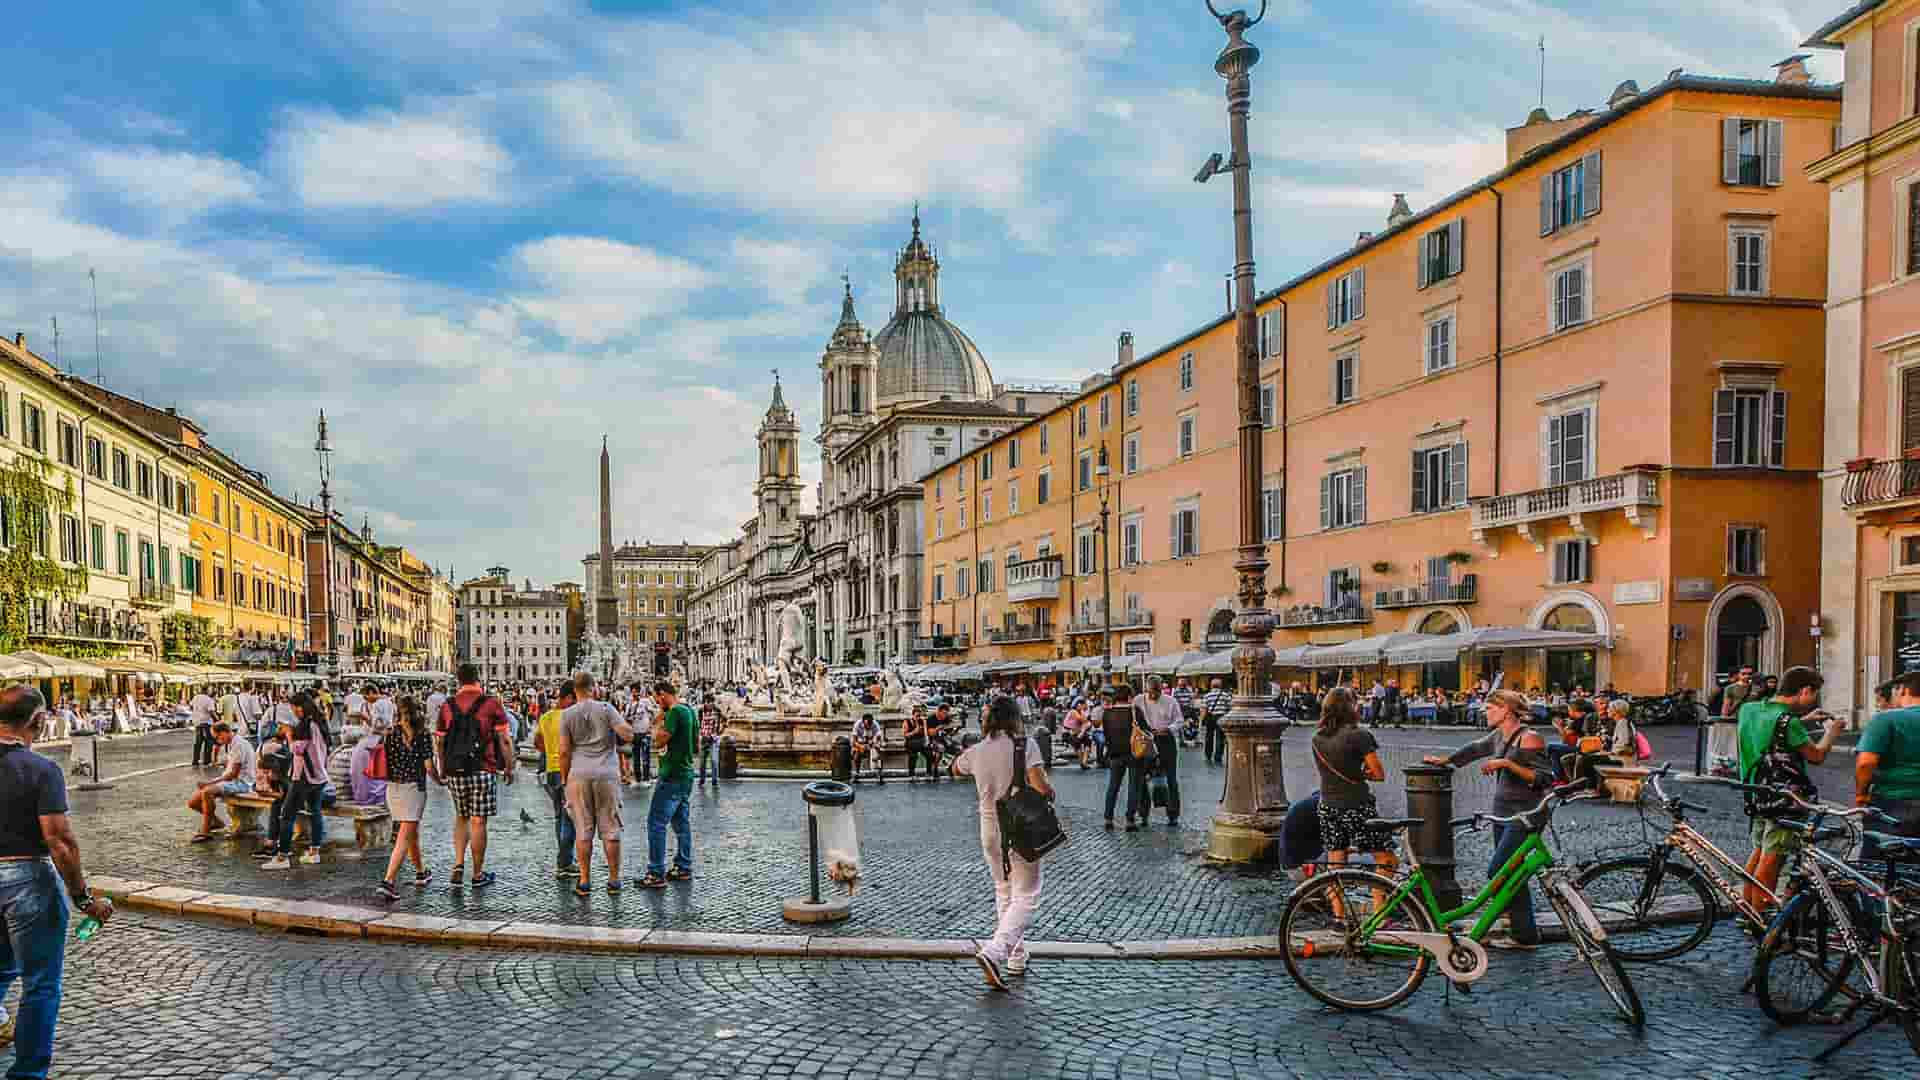 Places to stay near Rome City center, the Piazza Navona